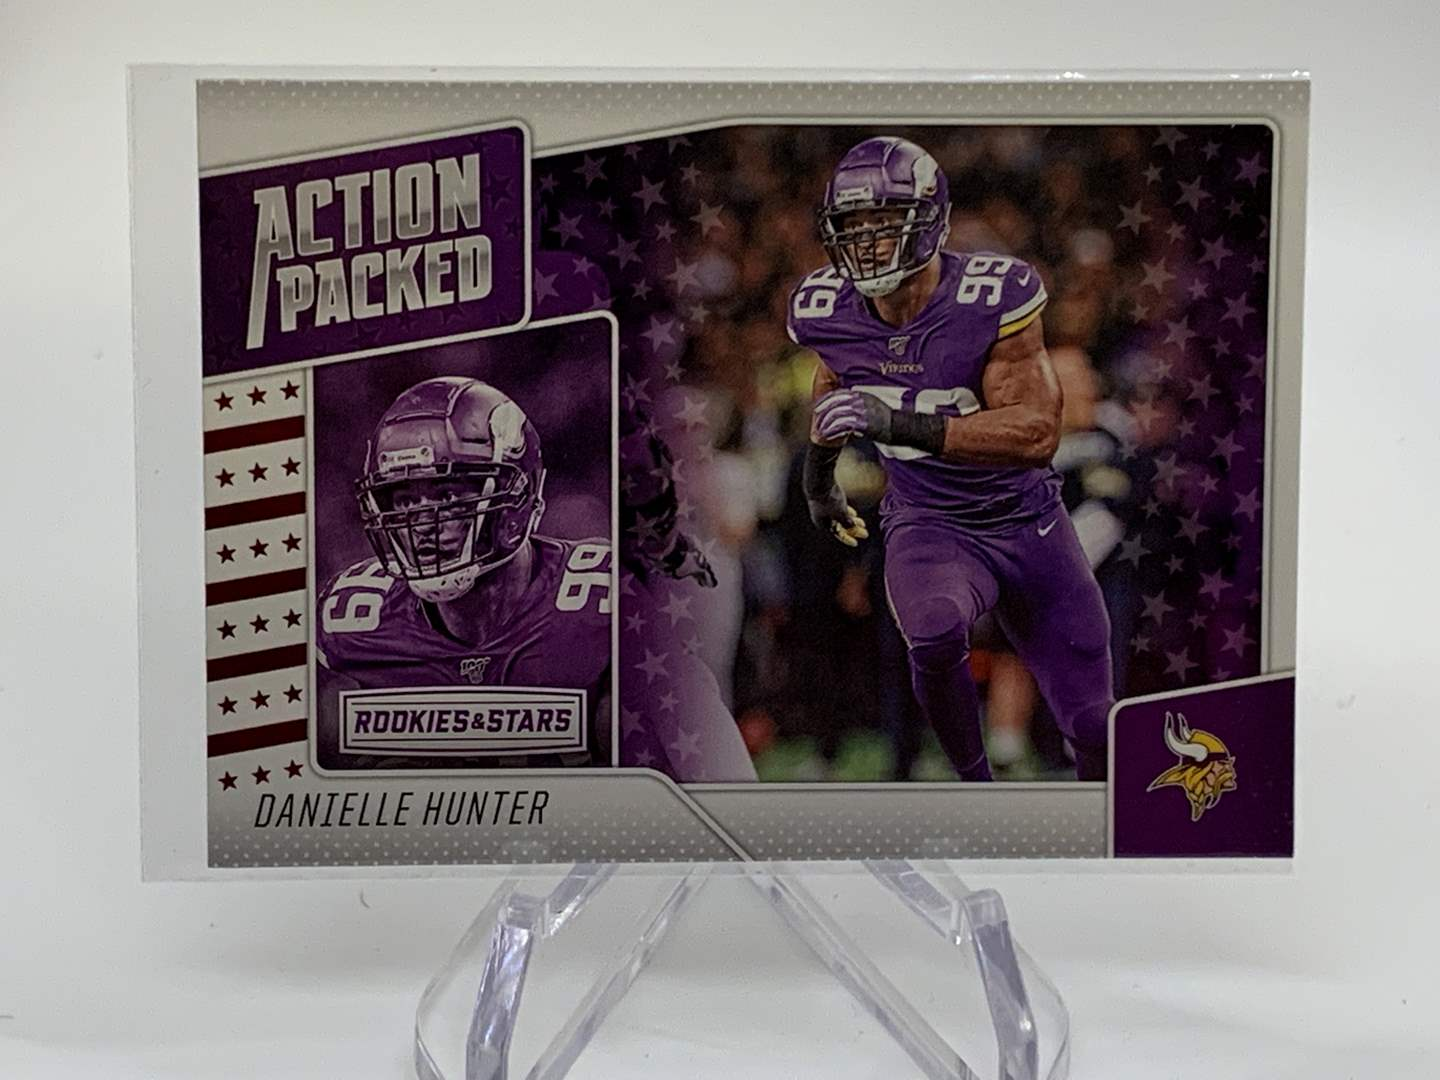 Lot # 180 2020 Panini Rookies & Stars DANIELLE HUNTER Action Packed (main image)